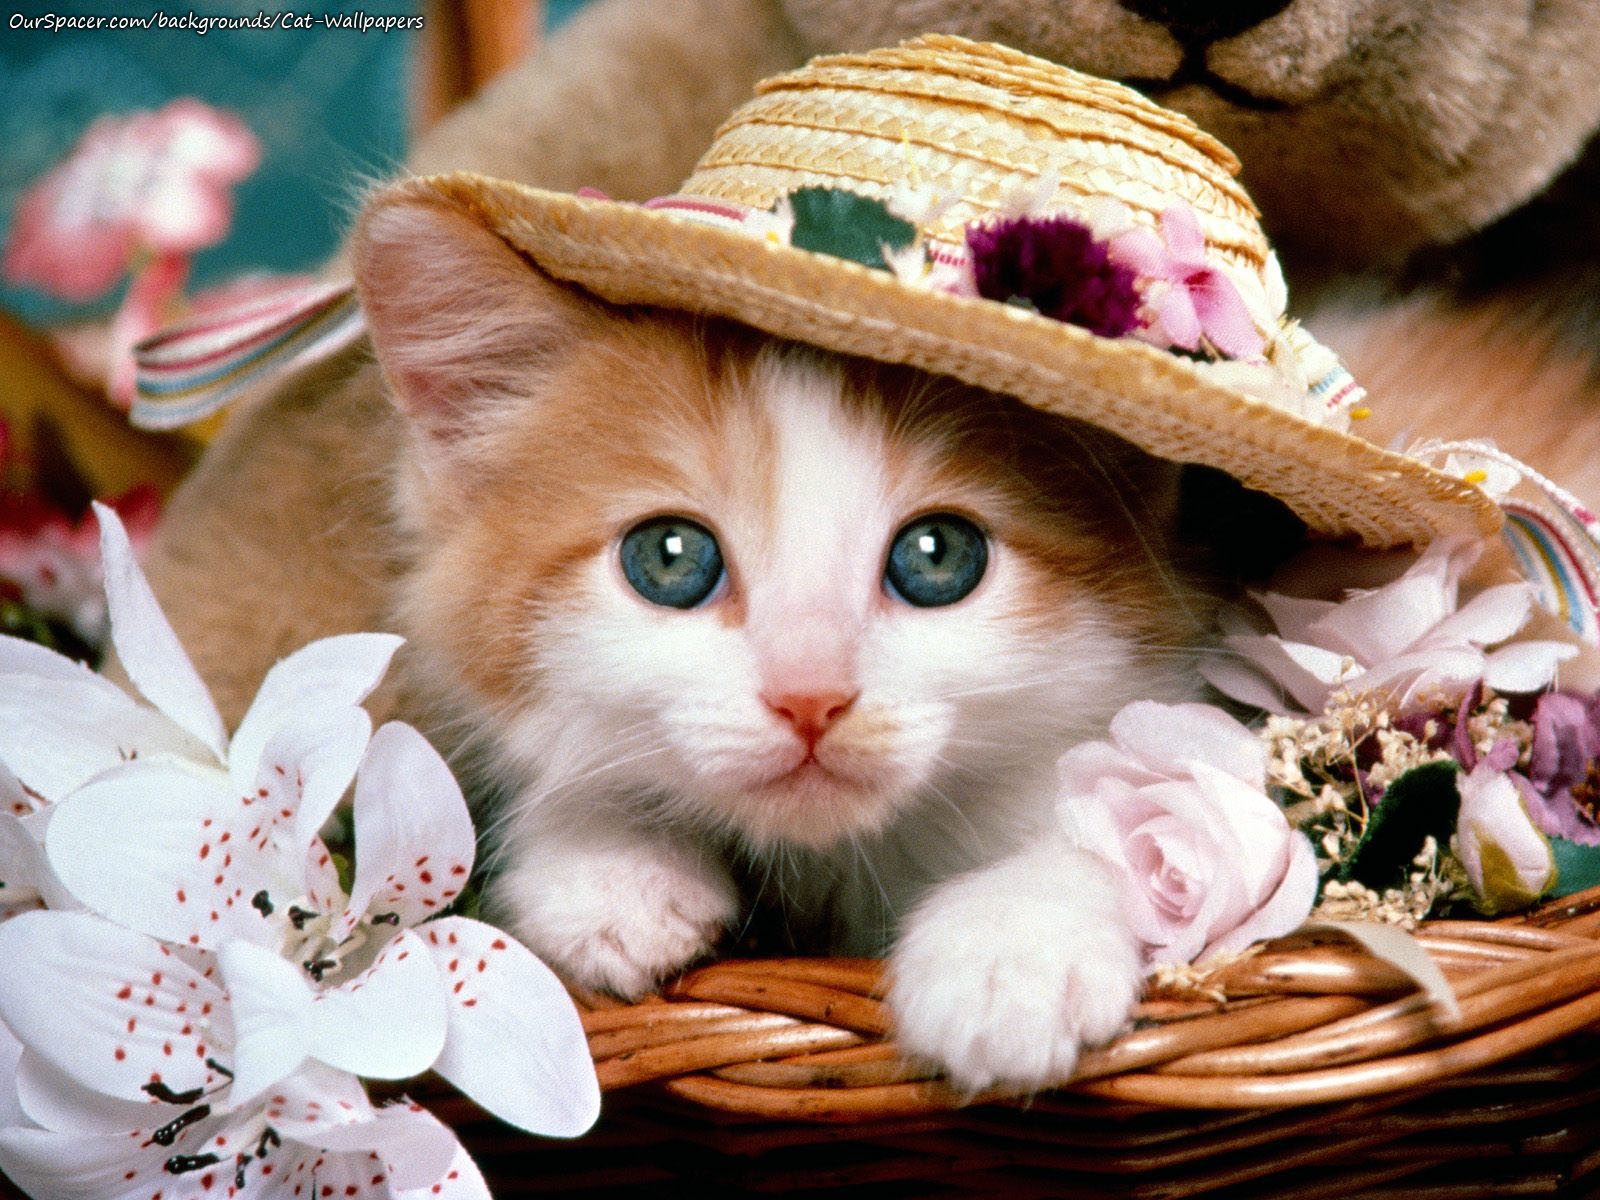 Cute kitten with a sun hat wallpapers for myspace, twitter, and hi5 backgrounds